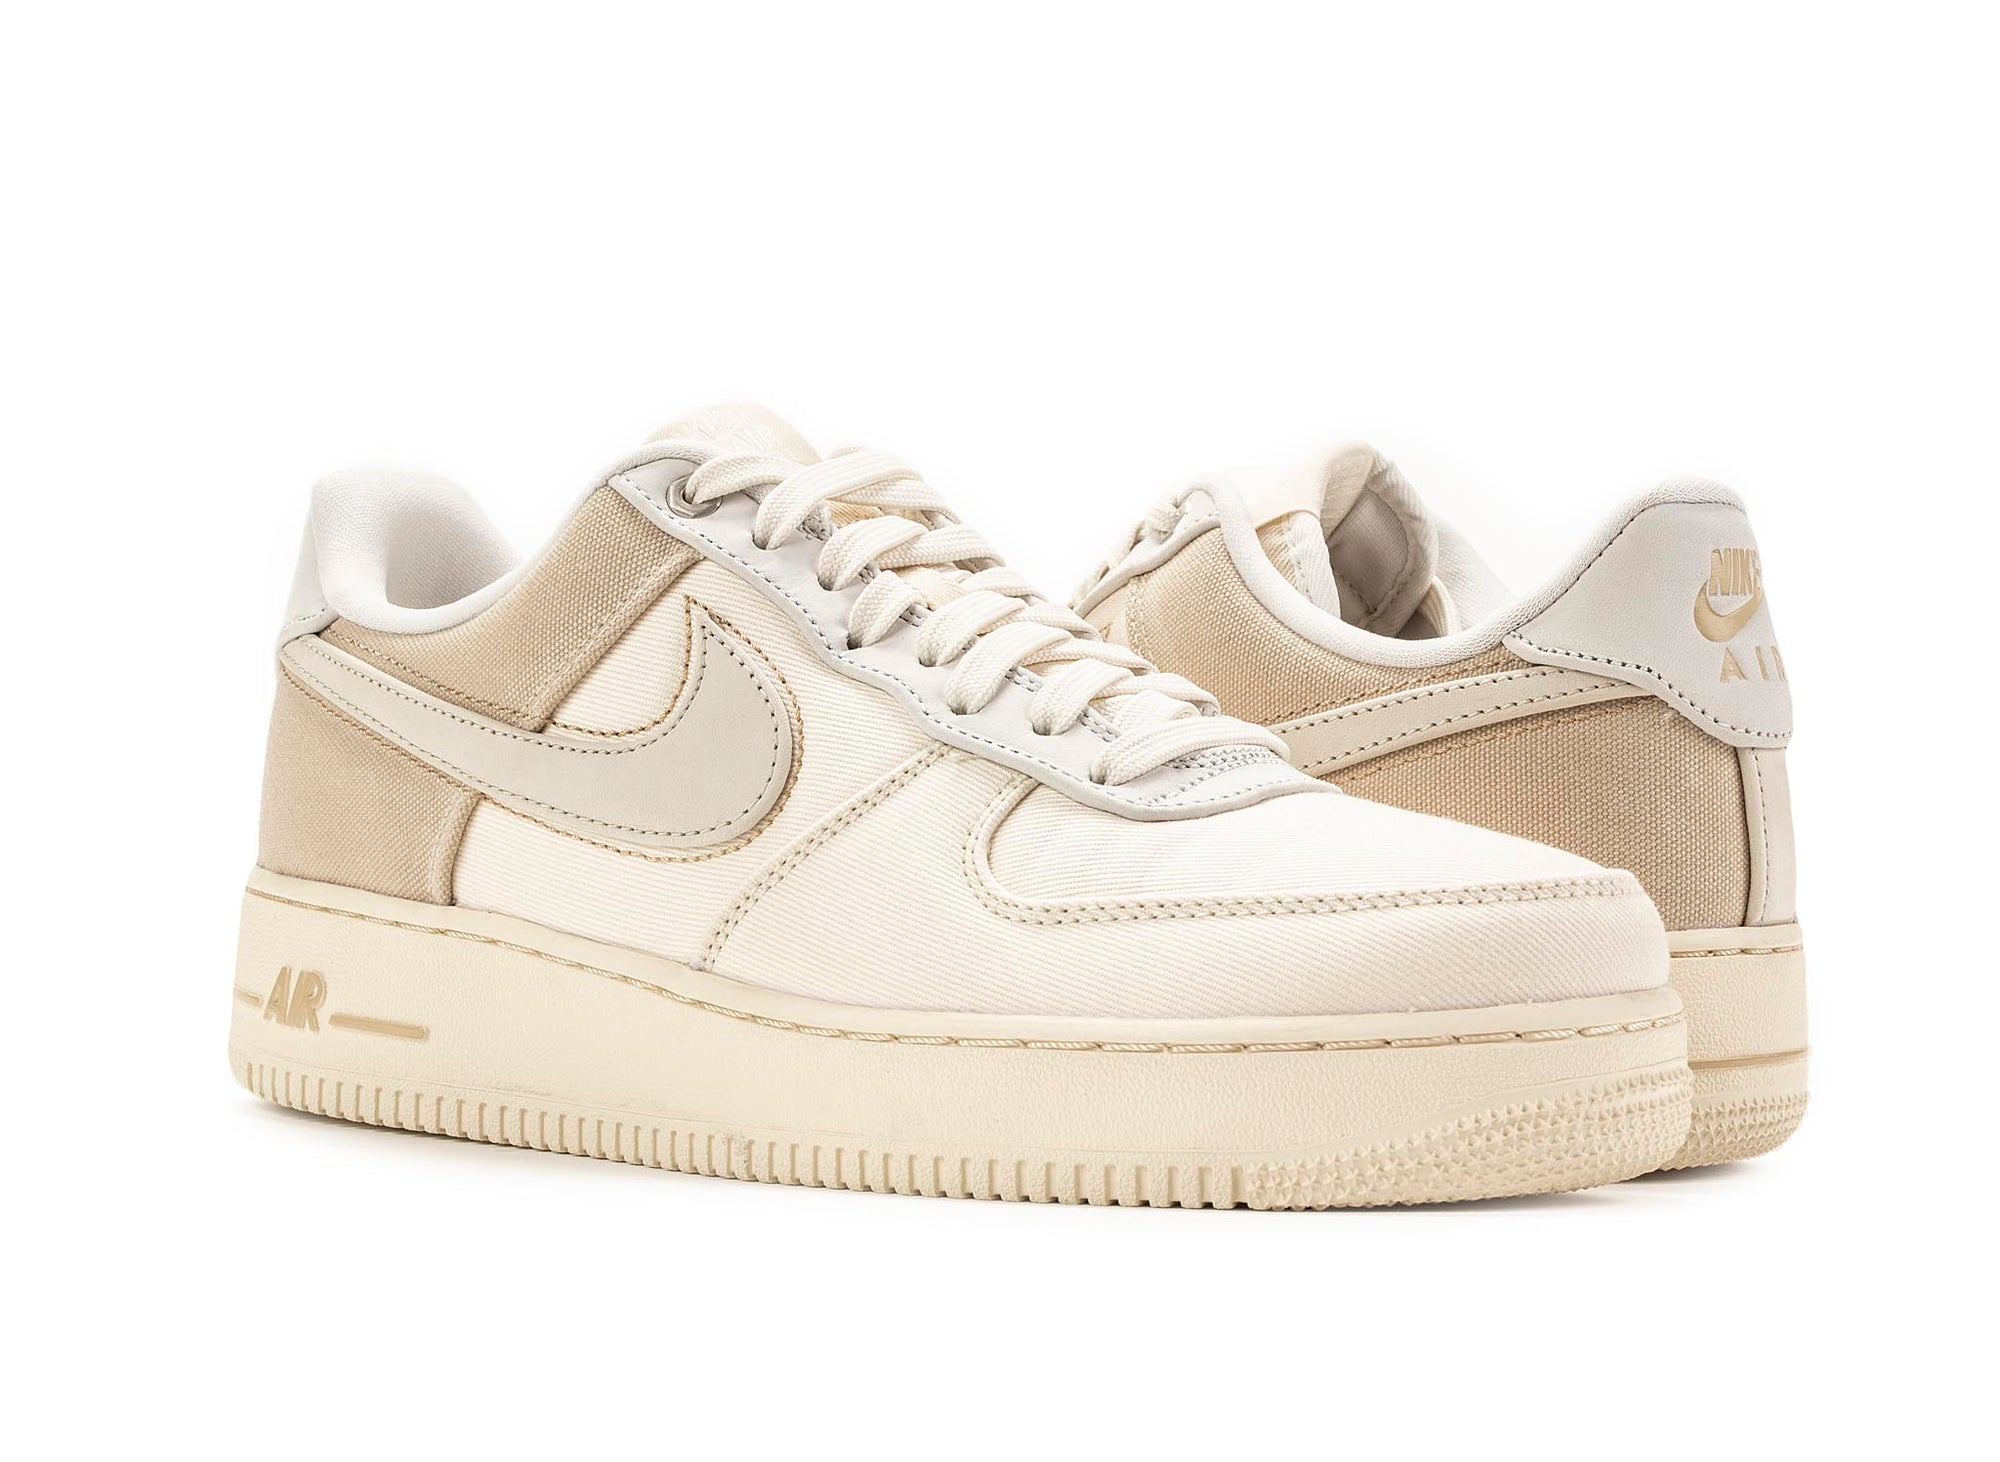 Nike Air Force 1 High Ivory Cream White For Sale